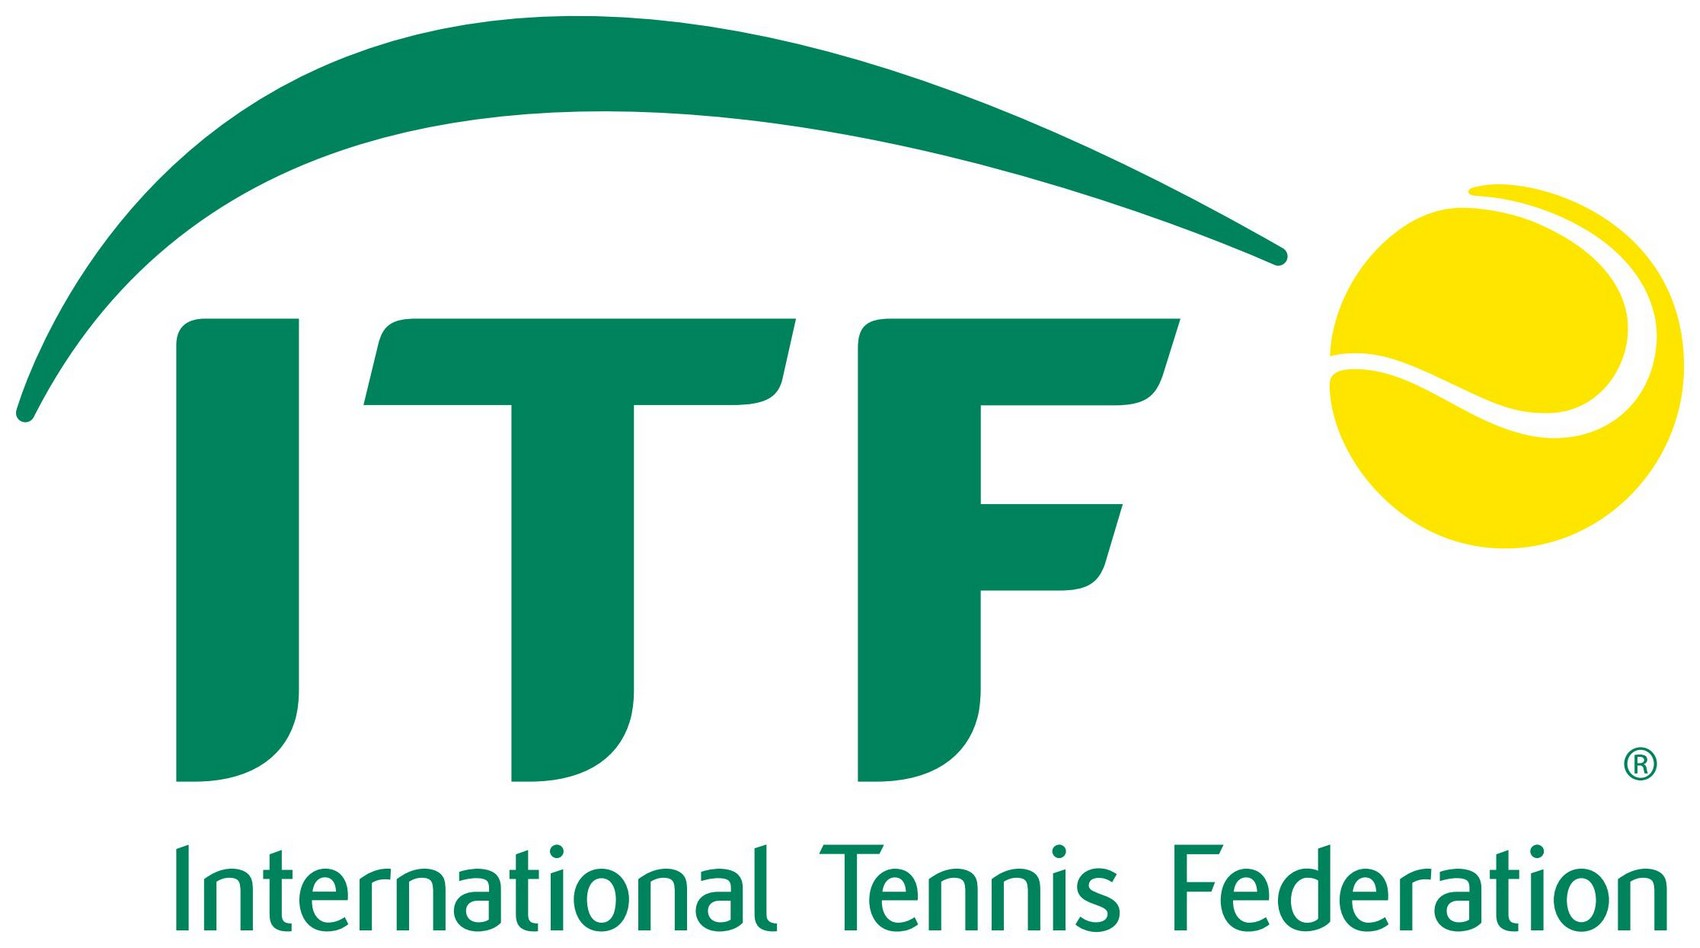 The ITF have announced that the 2014 Wheelchair Doubles Masters will return to Mission Viejo in California in 2014 ©ITF